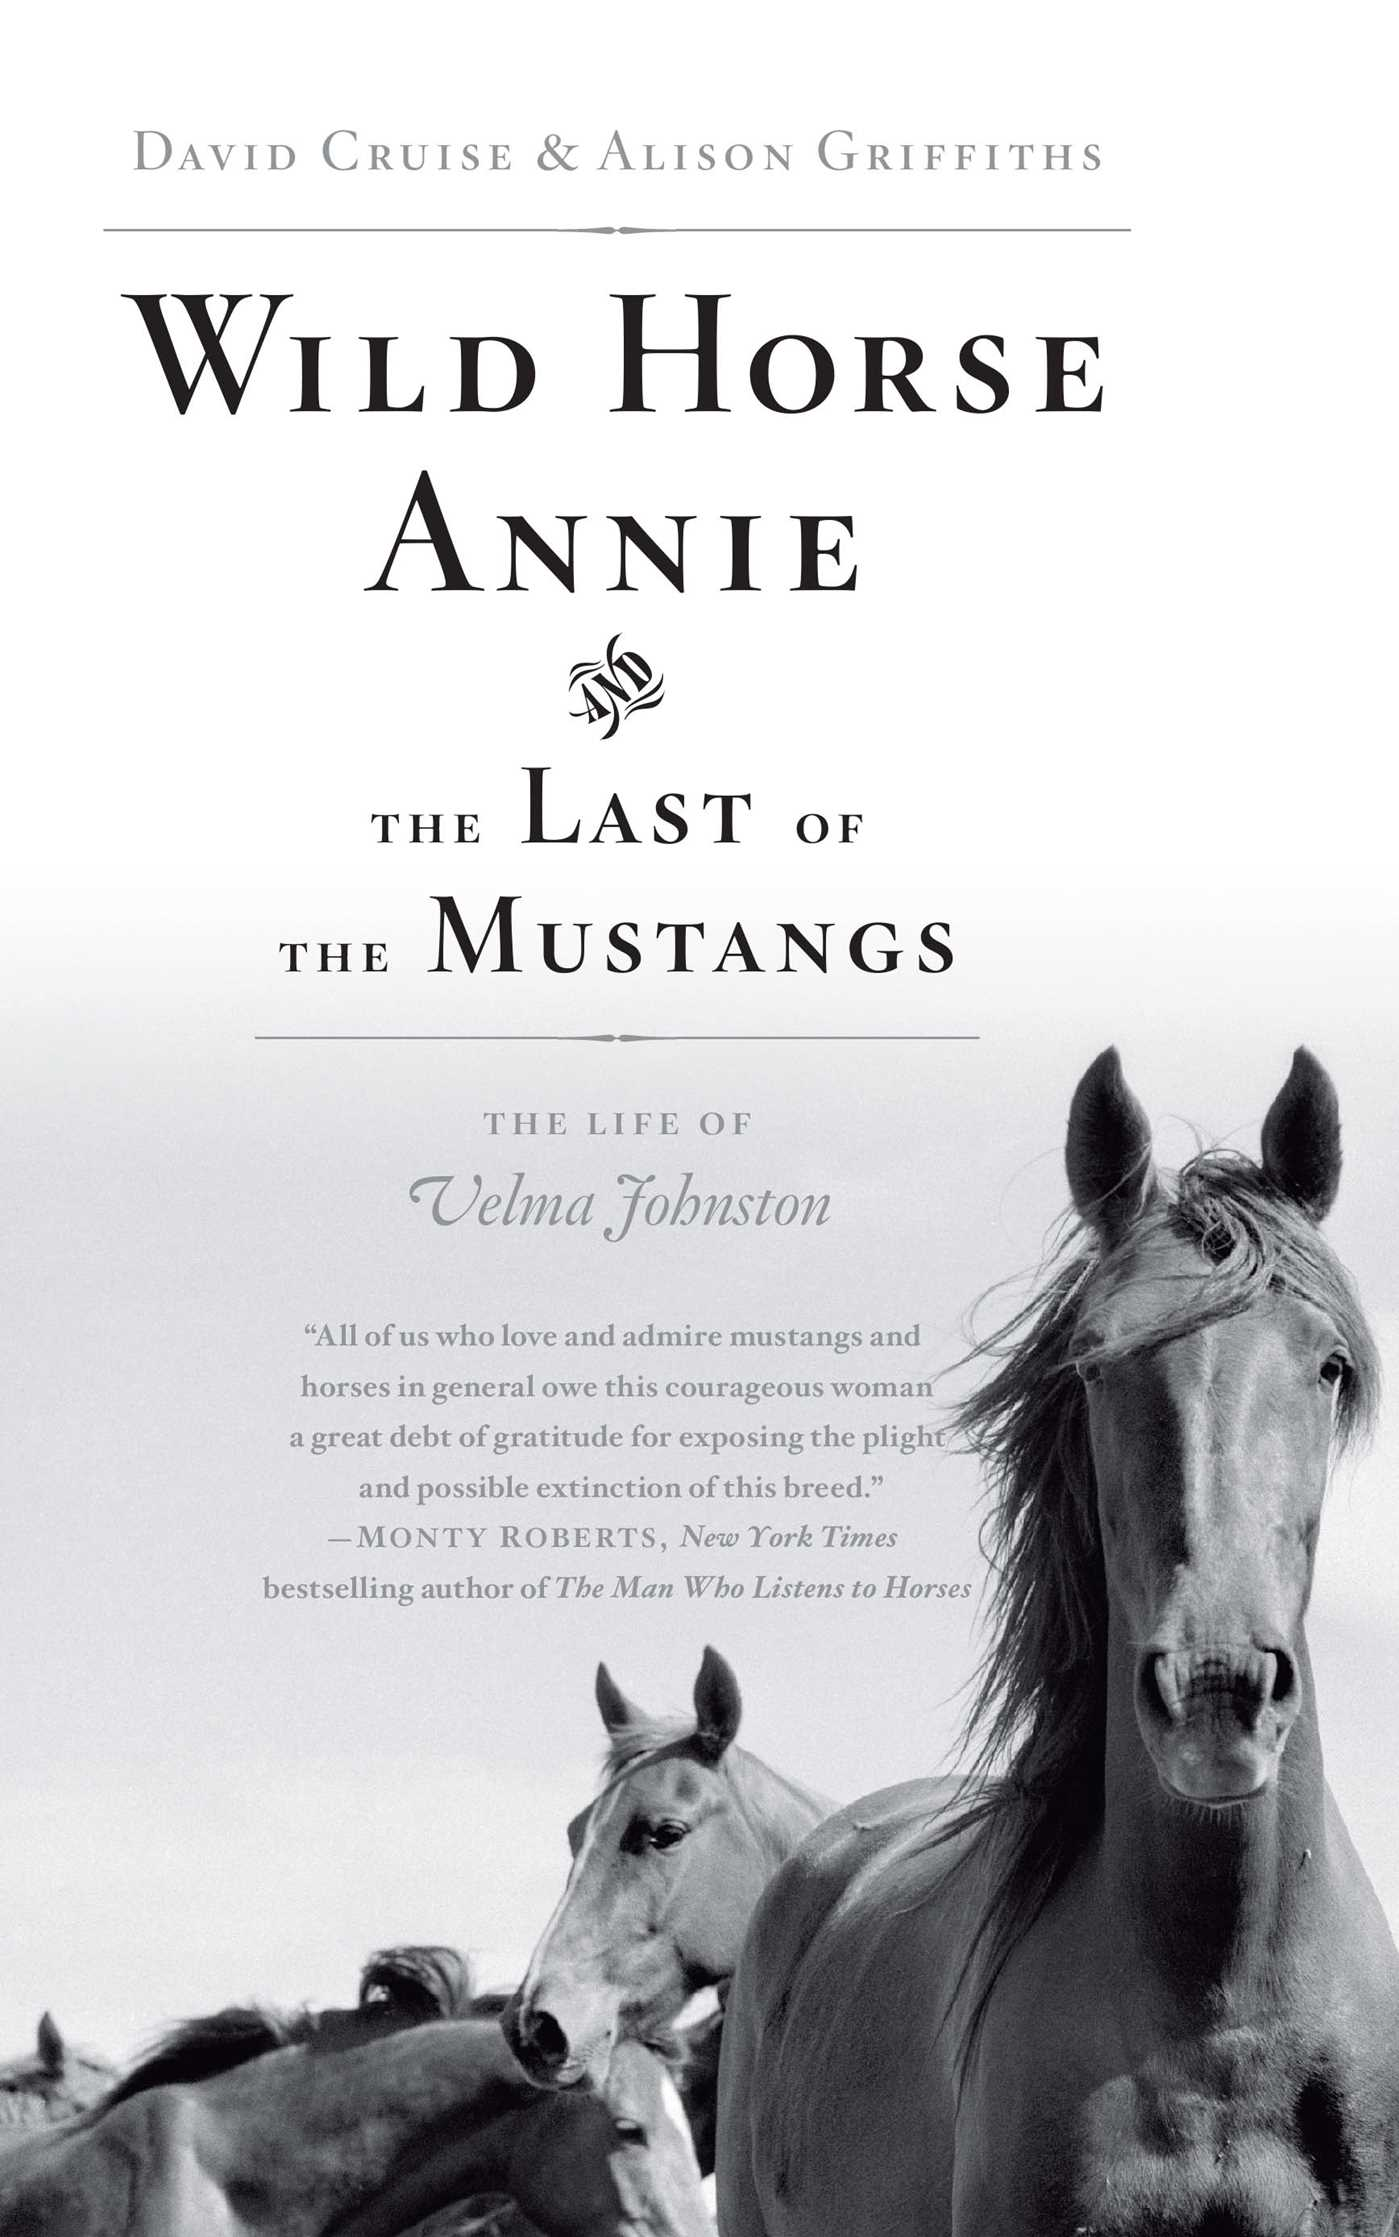 Wild horse annie and the last of the mustangs 9781416553366 hr